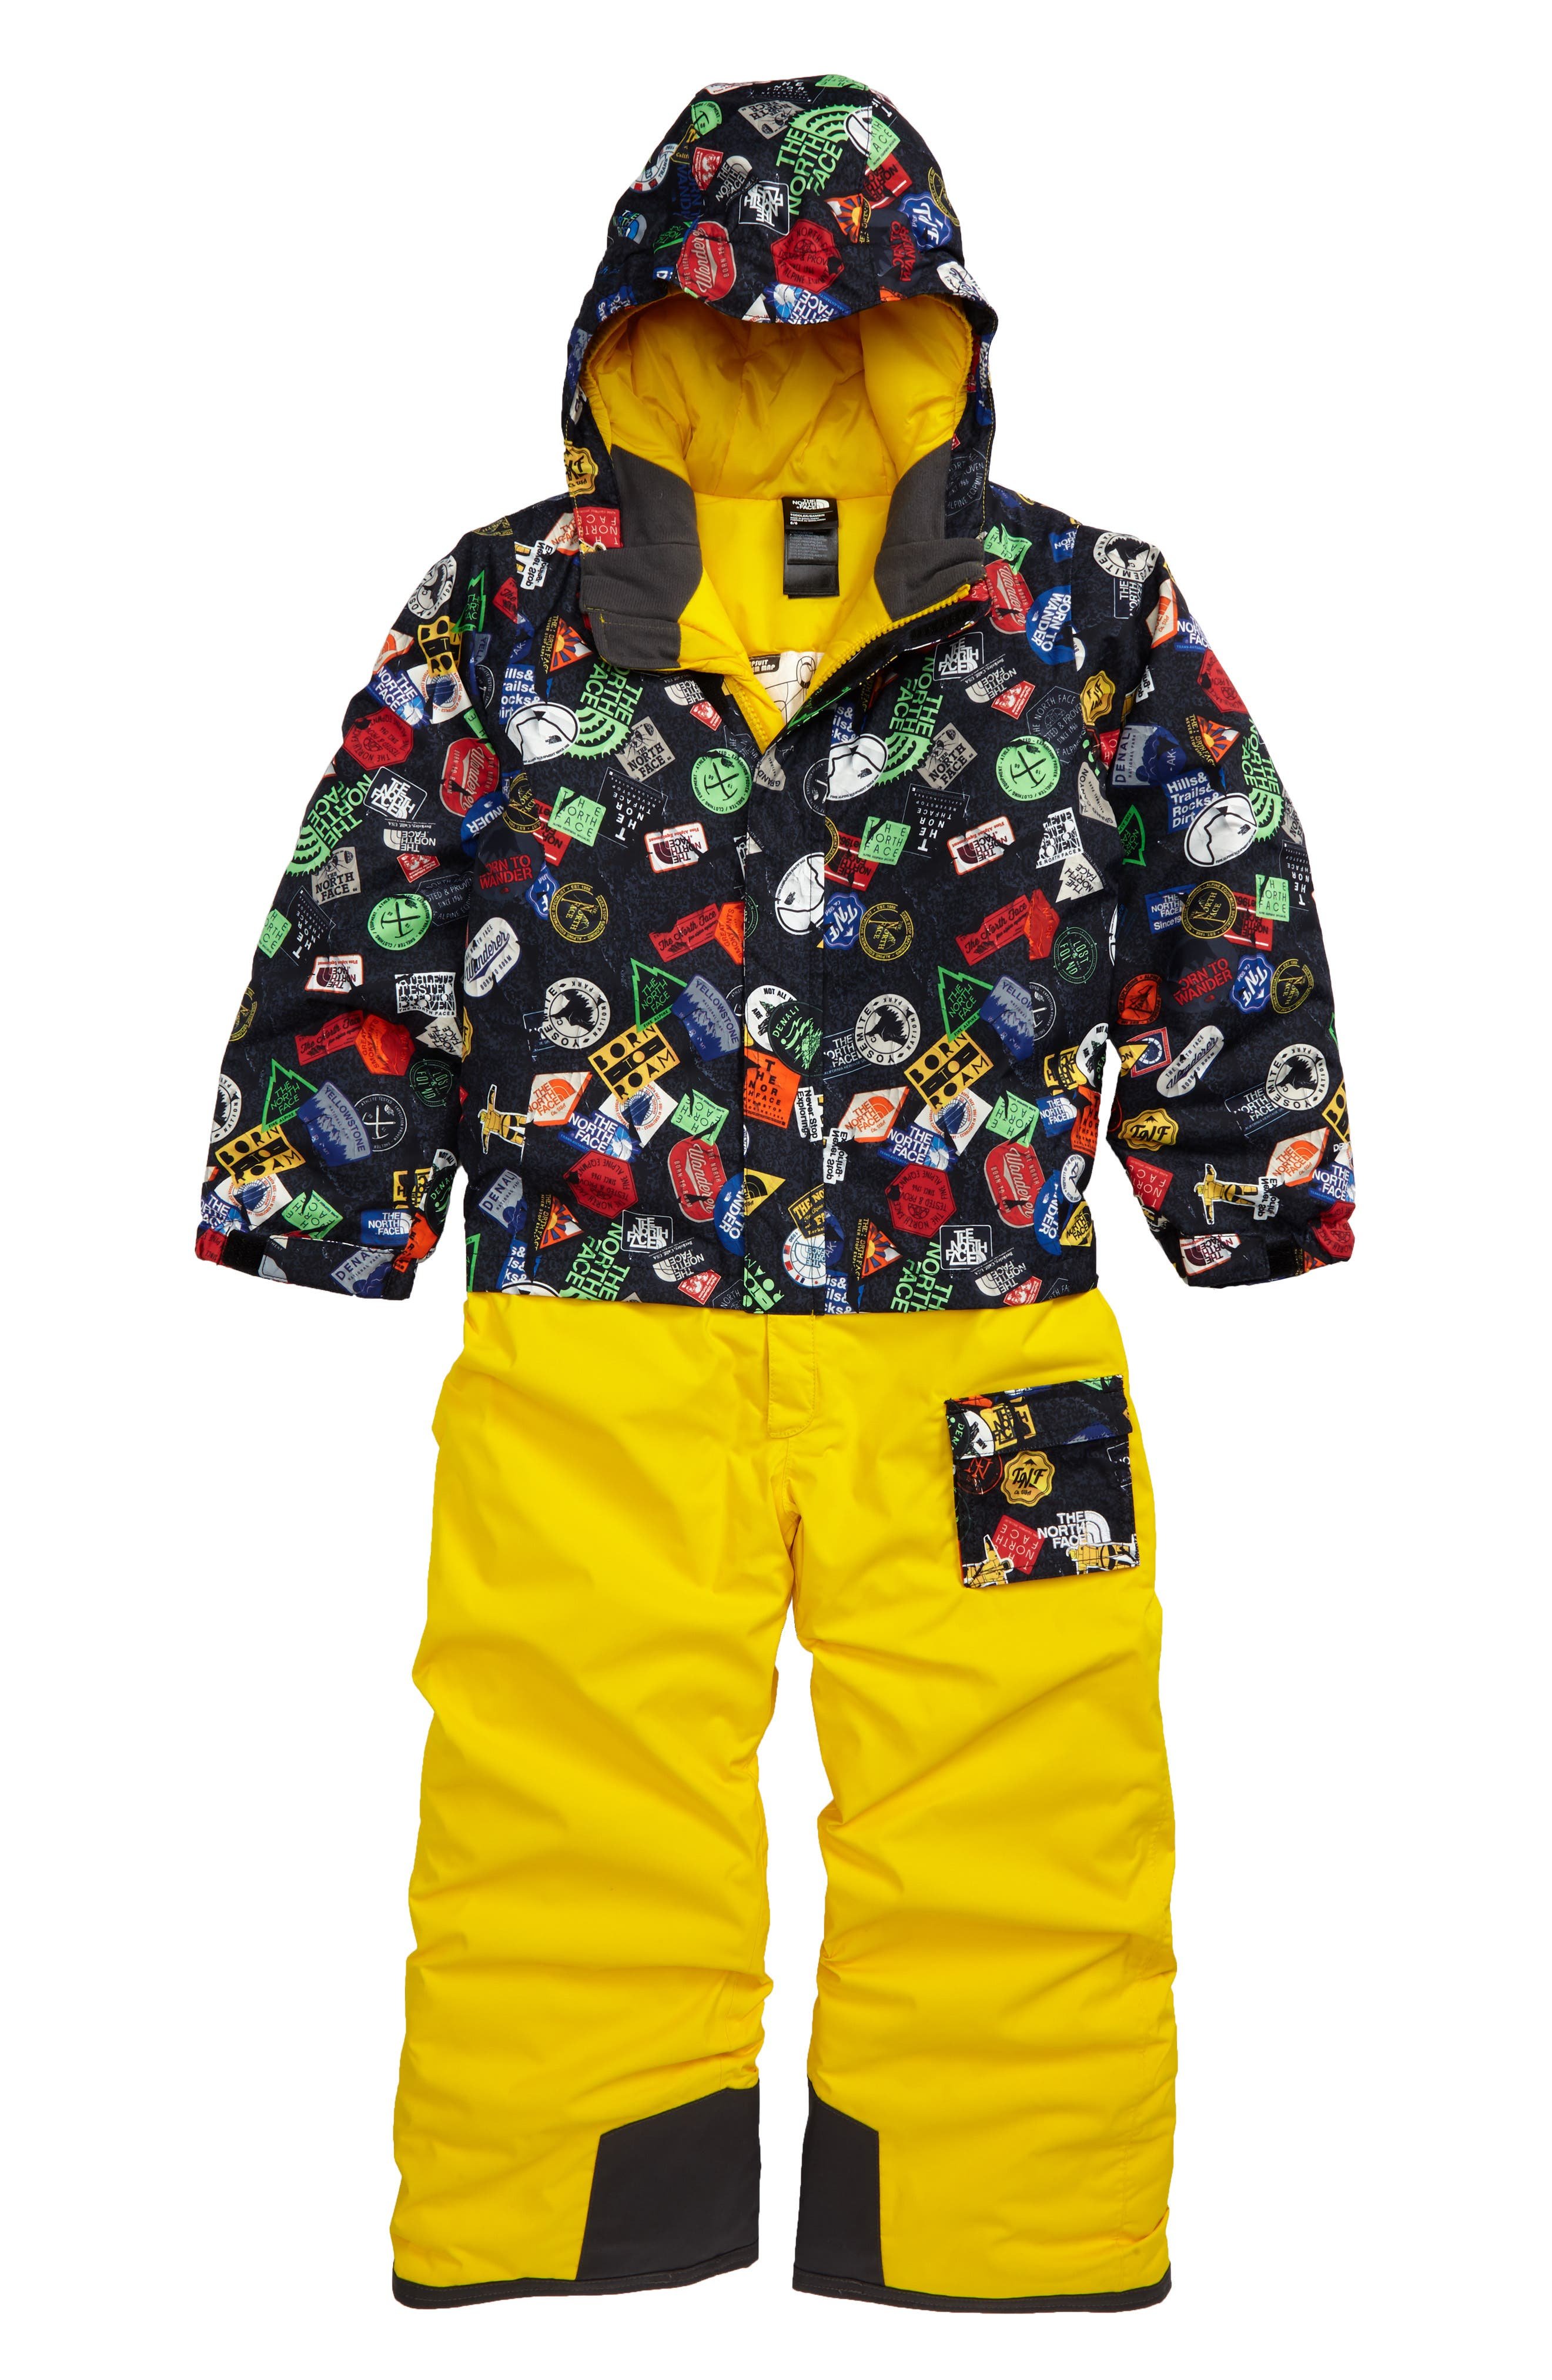 Alternate Image 1 Selected - The North Face Heatseeker™ Insulated Waterproof & Windproof Snowsuit (Toddler Boys & Little Boys)